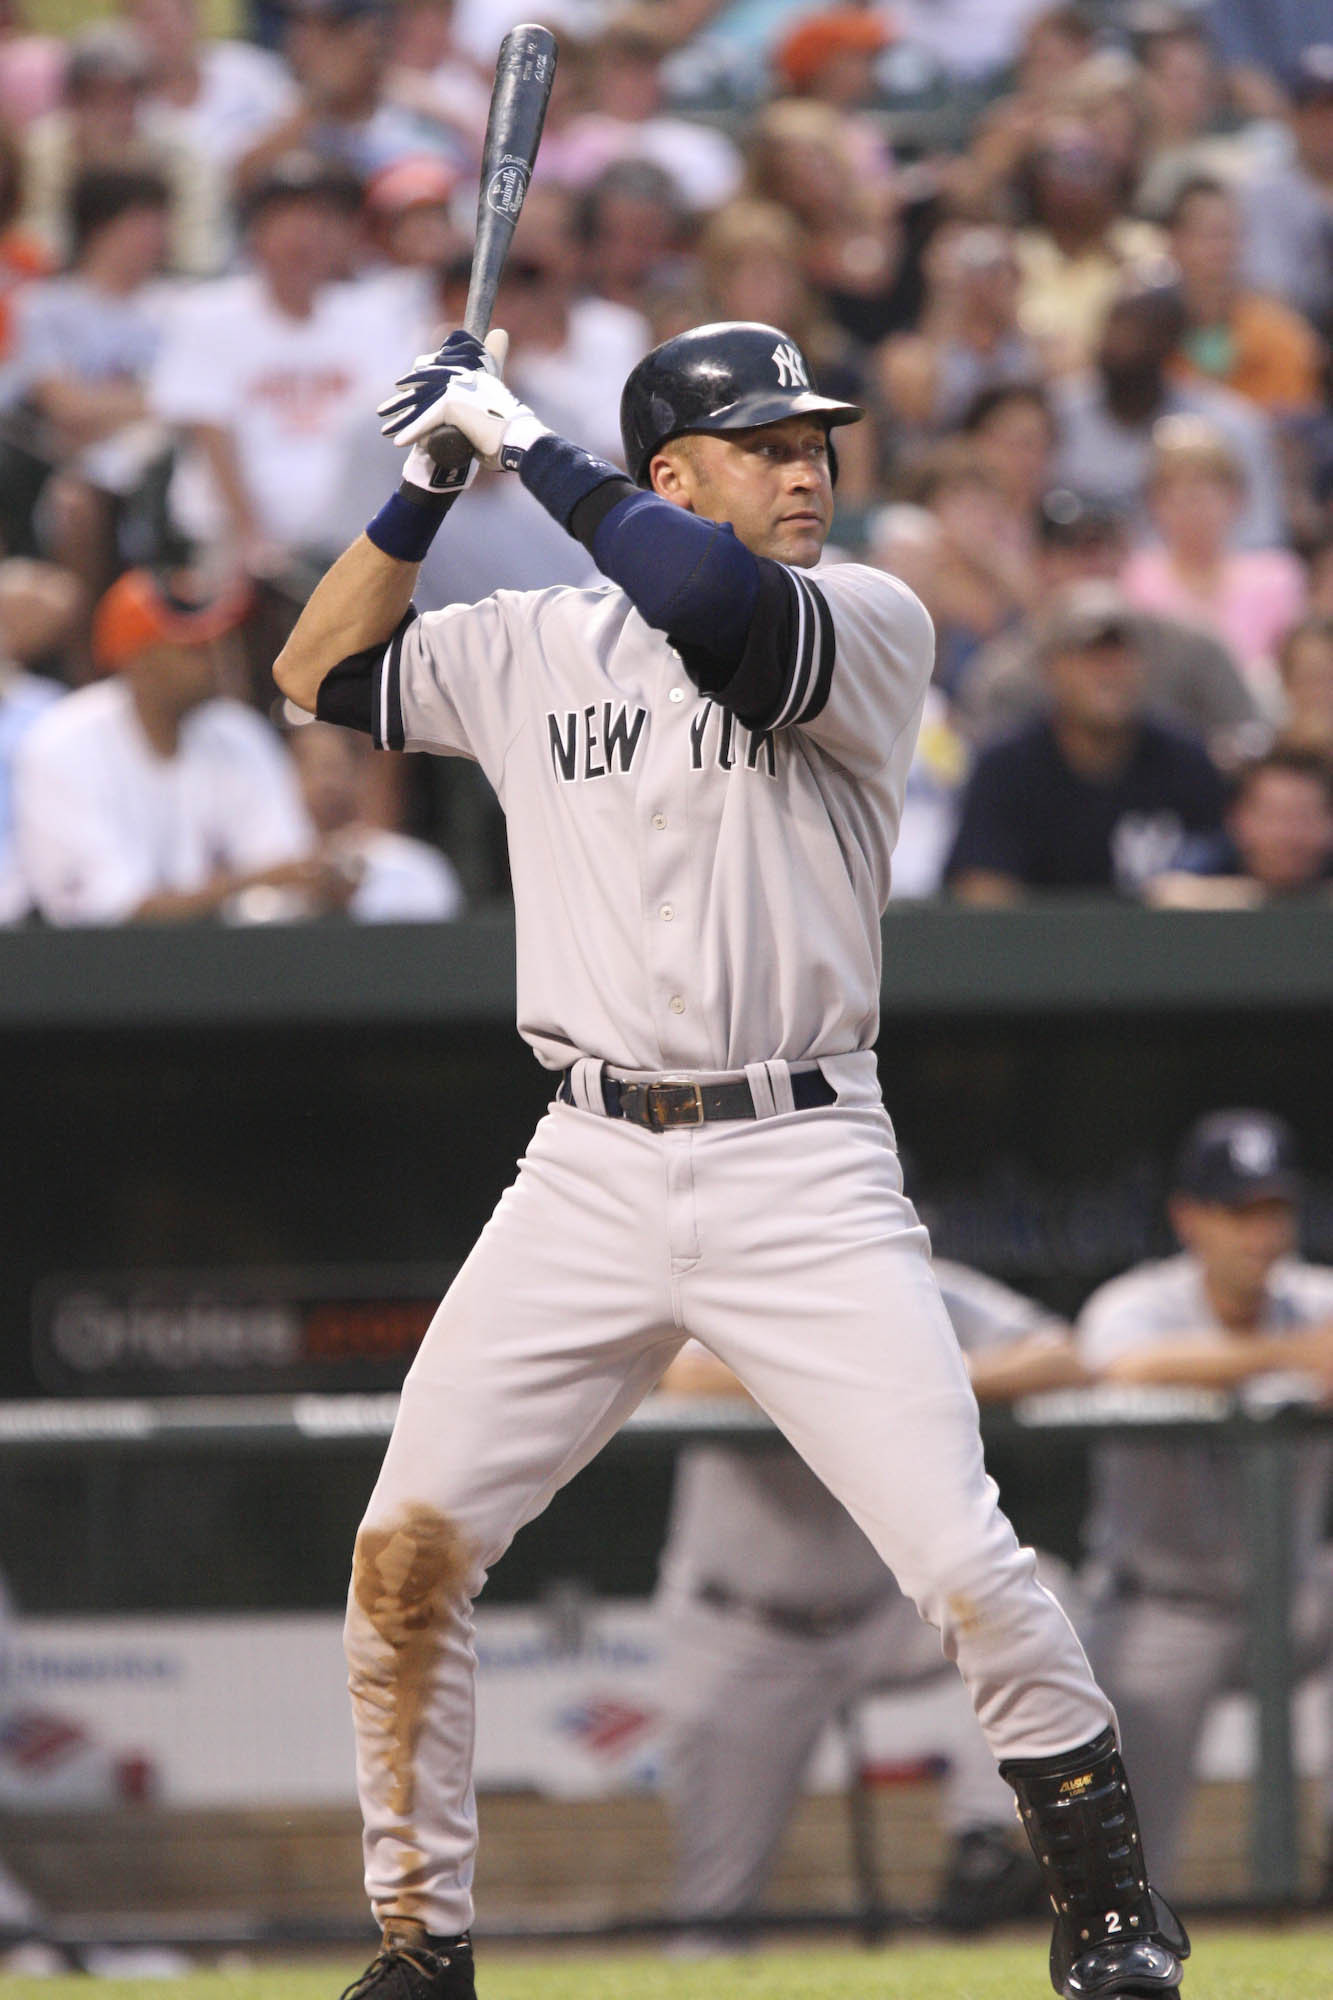 "A man in a grey baseball uniform with ""New York"" written on the front in navy letters and a navy helmet stands in a batting stance while holding a baseball bat."